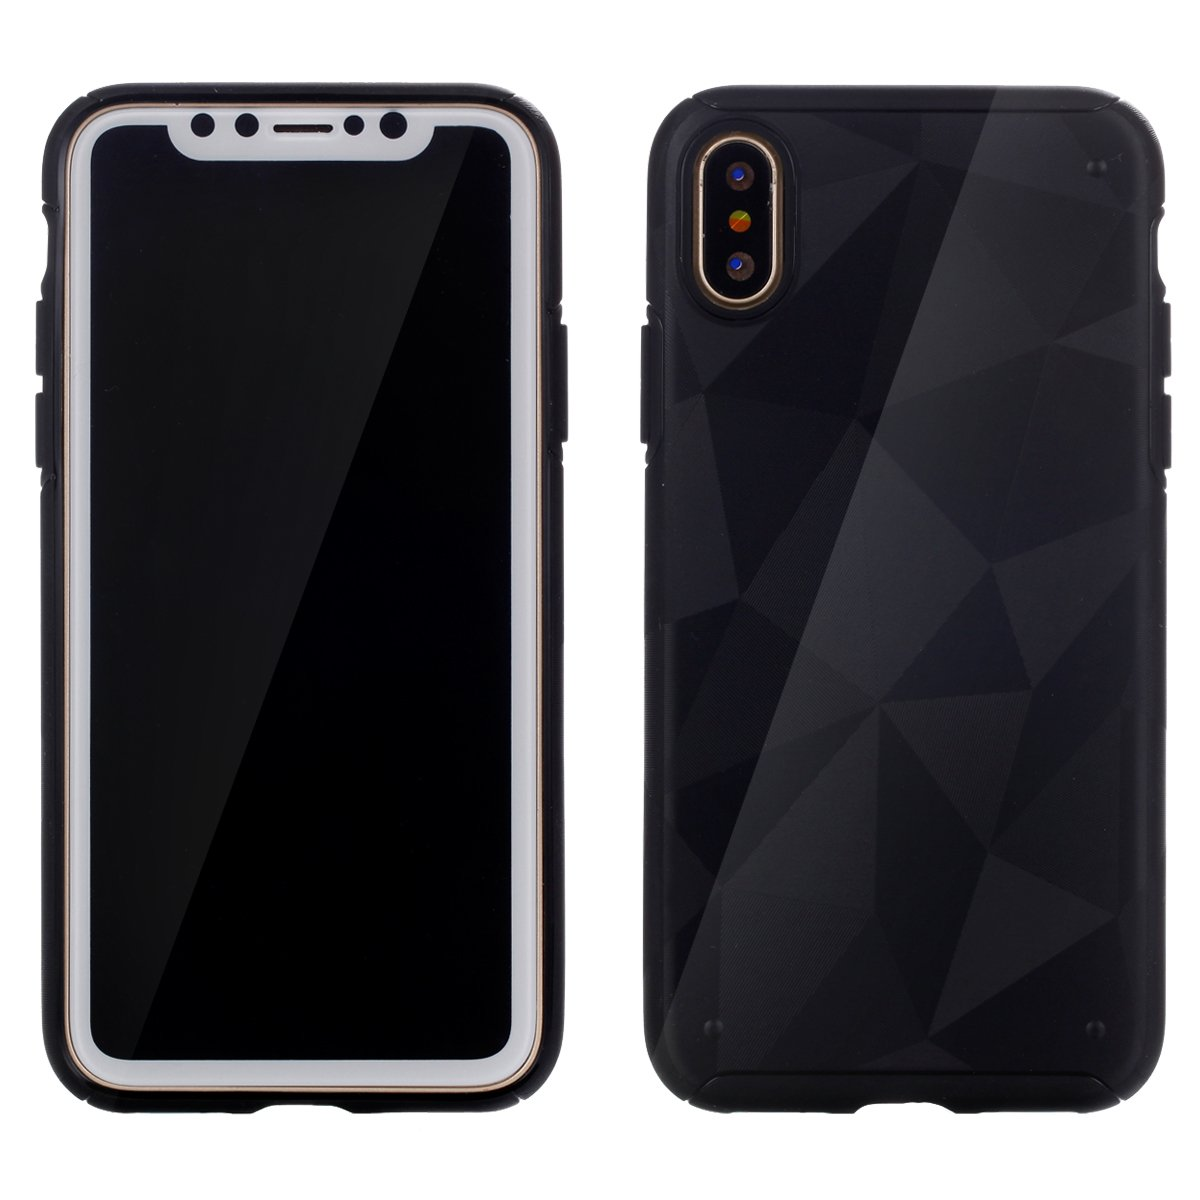 Iphone X Iphone Xs Case Cover Cellphone Case Cellphone Amazon In Electronics